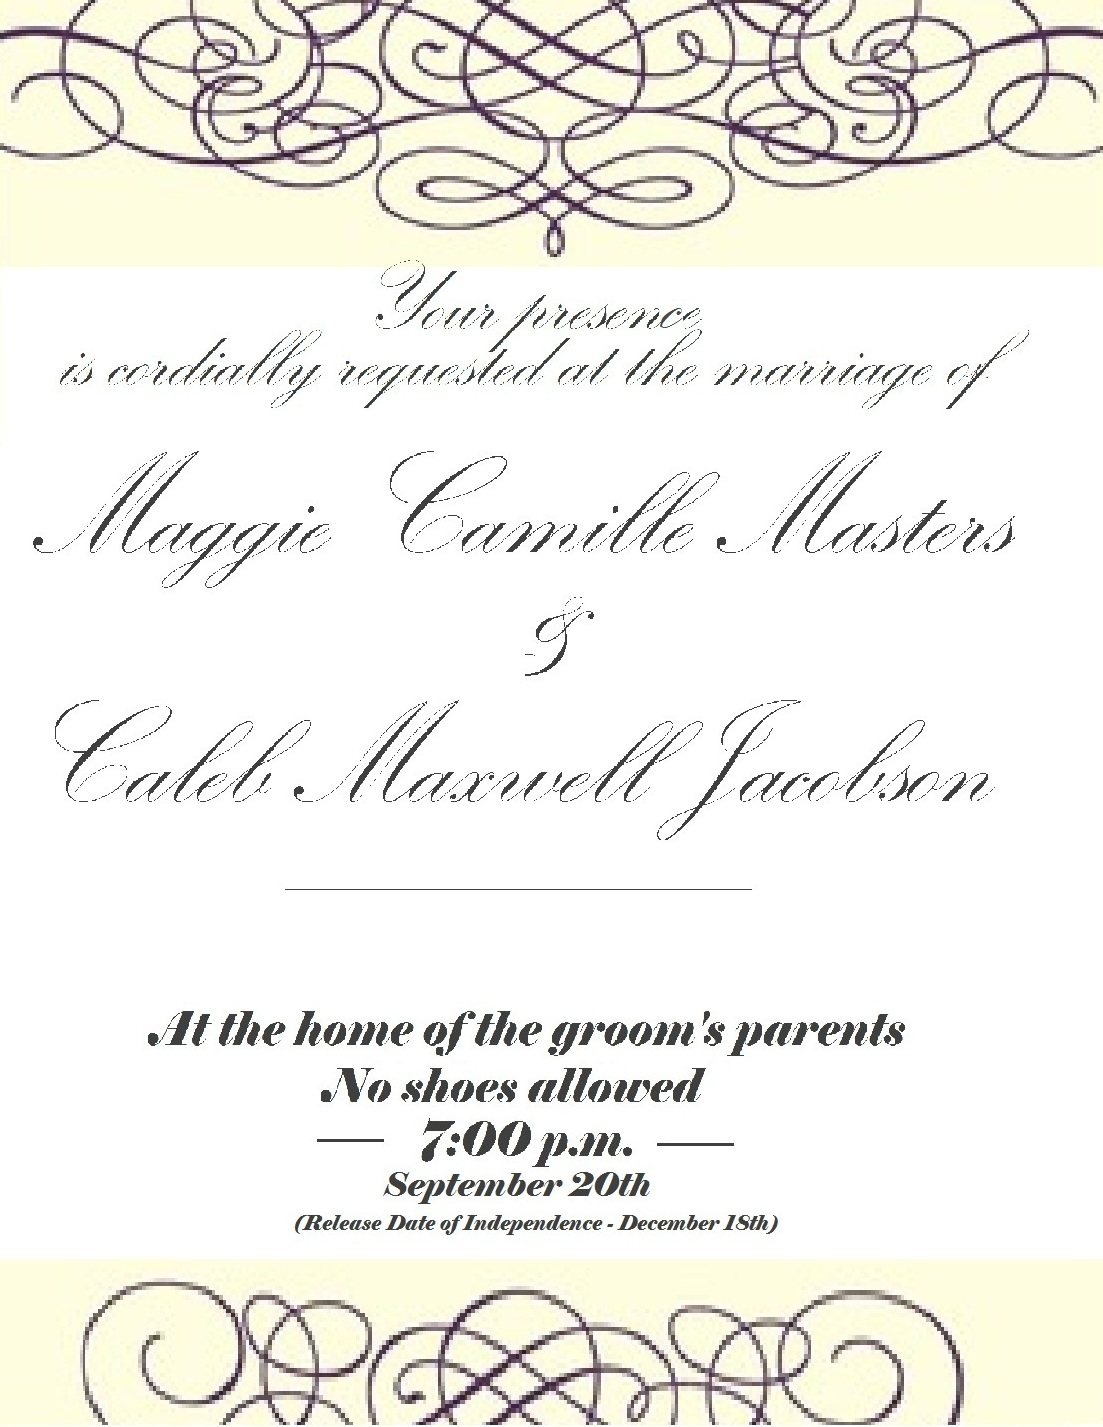 You Are Cordially Invited Wedding is amazing invitations design